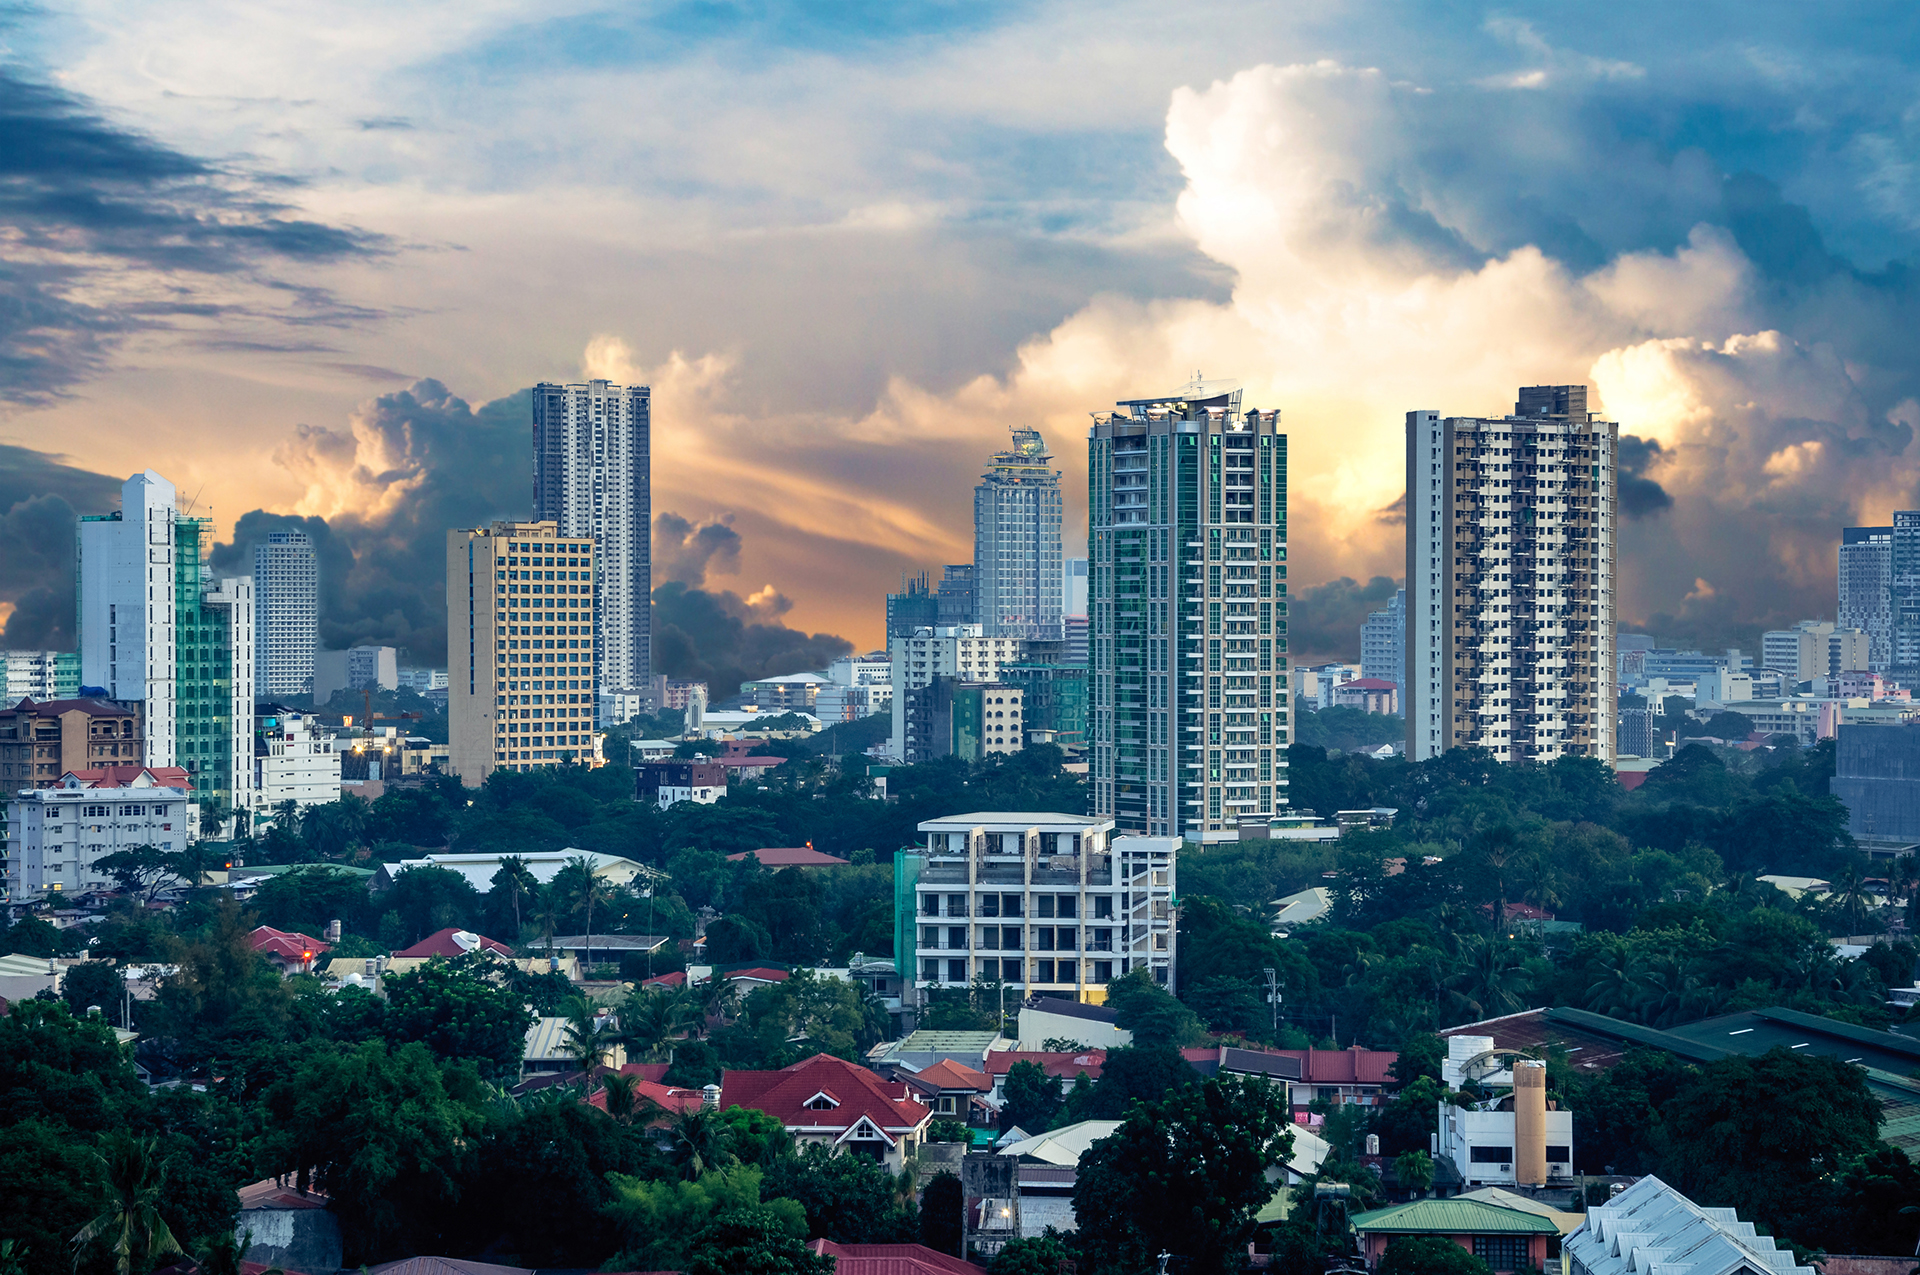 Support Services Group – Asia Pacific expands in the Asia Pacific Region